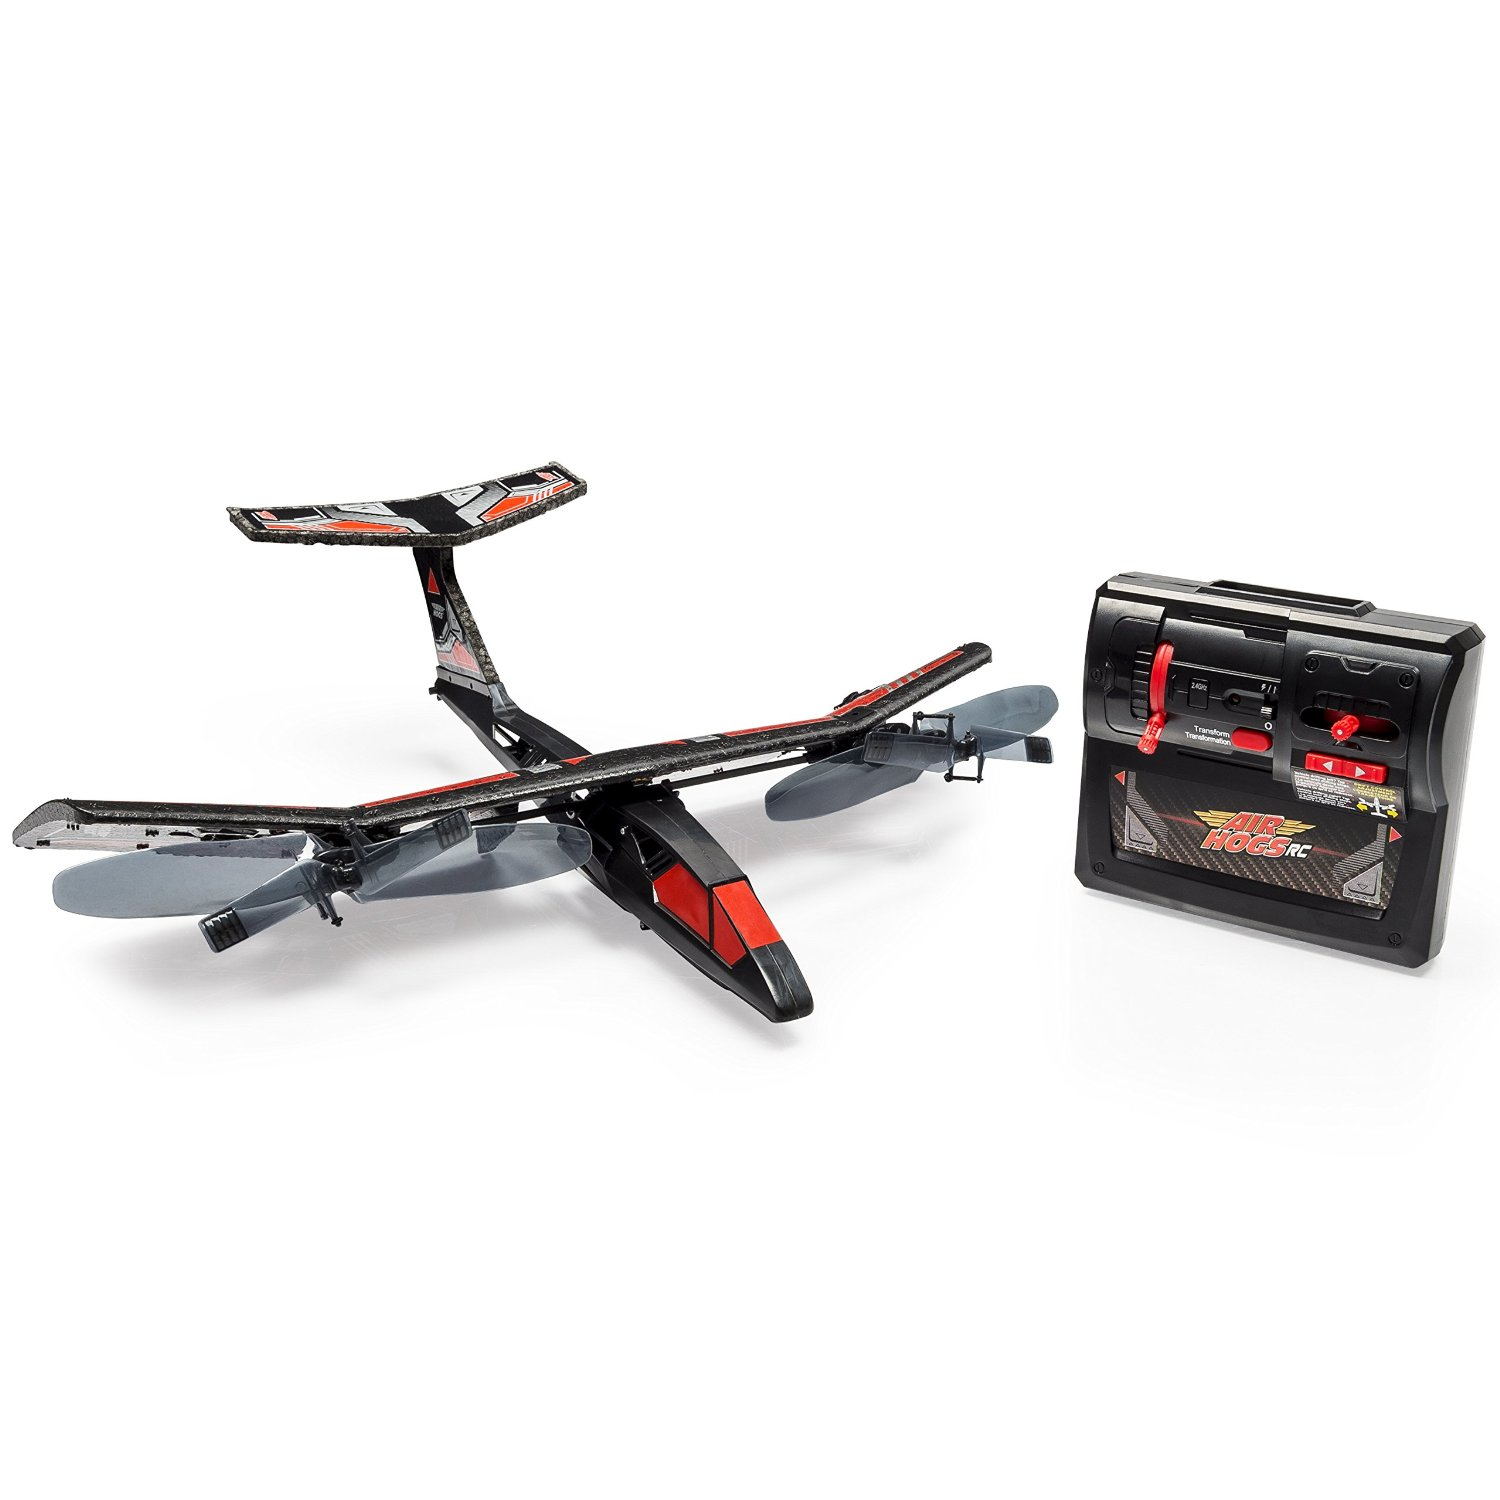 myrobothub com | Air Hogs - Fury Jump Jet RC Helicopter